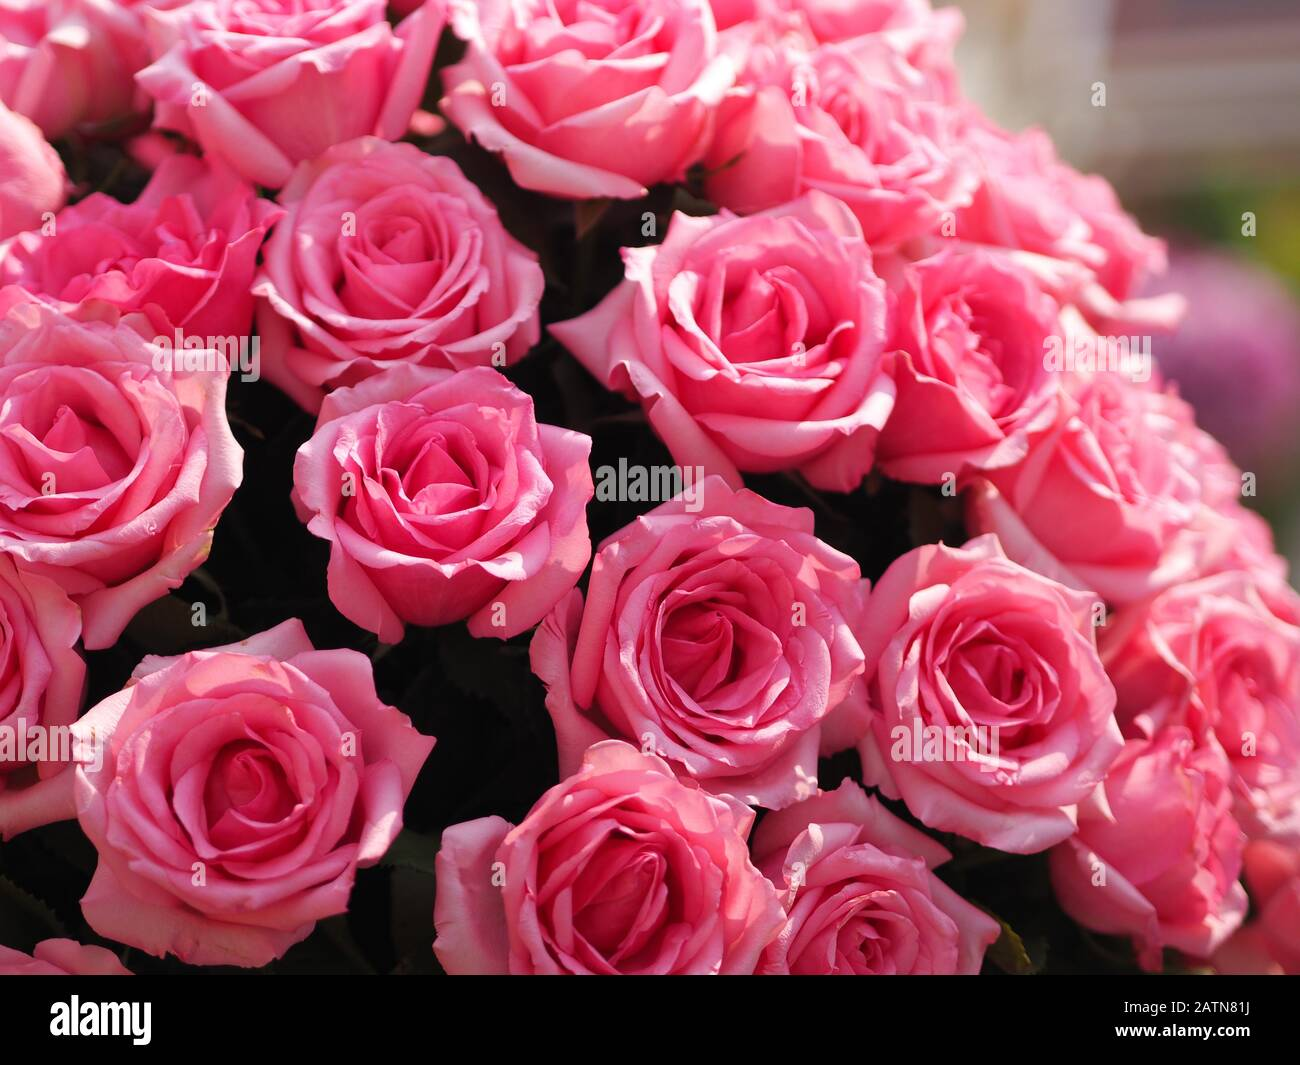 Pink Rose Flower Arrangement Beautiful Bouquet On Blurred Of Nature Background Symbol Love Valentine Day Beautiful In Nature Stock Photo Alamy